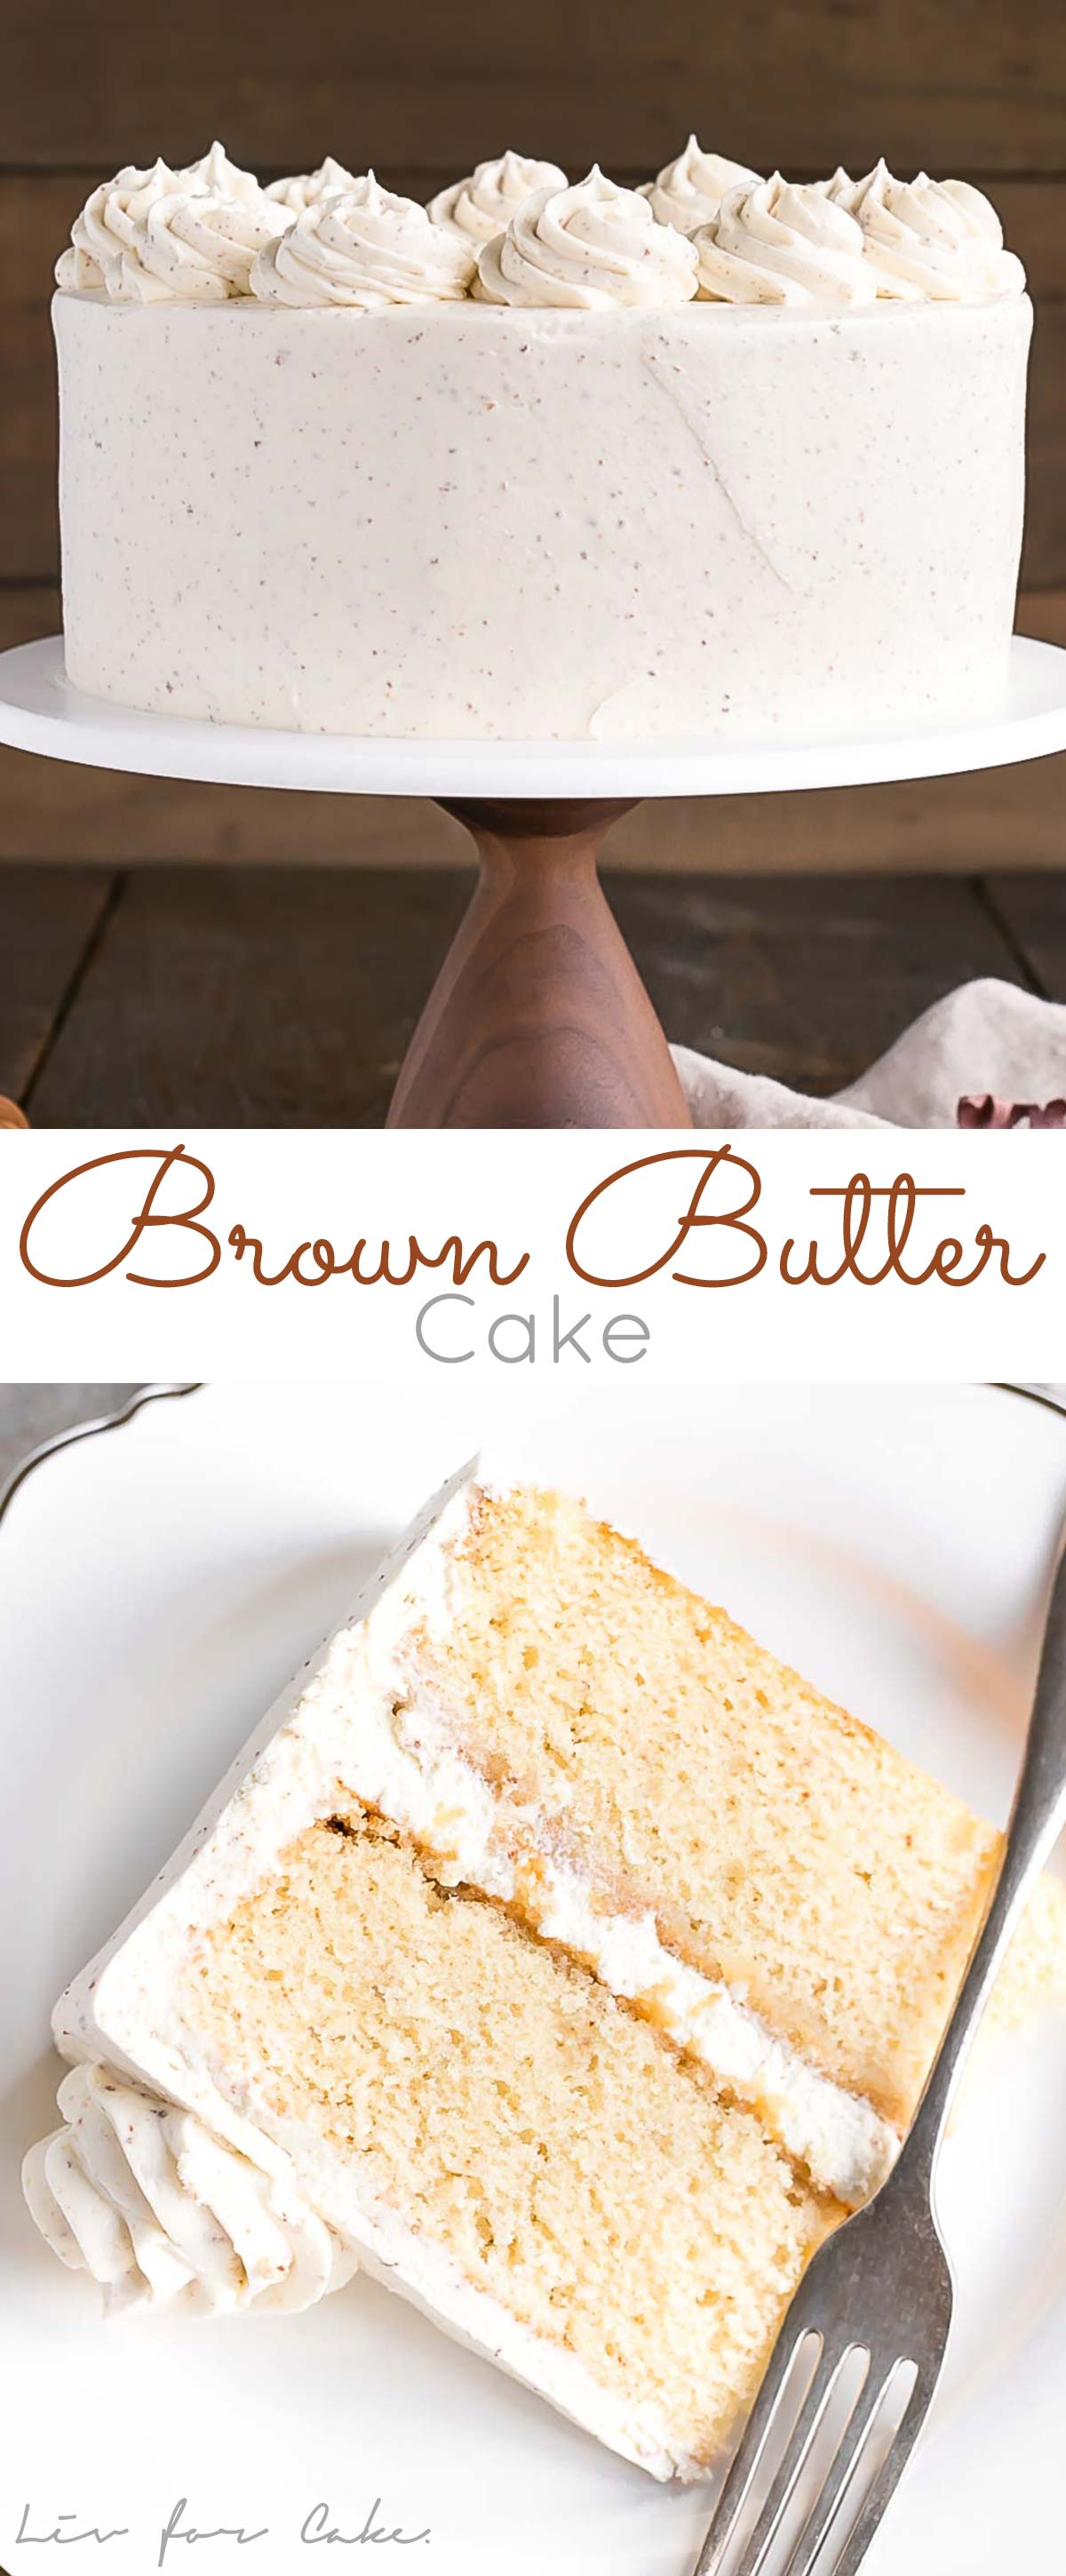 Take classic vanilla cake to the next level with this Brown Butter Cake! A simple change for an intense nutty flavour. | livforcake.com